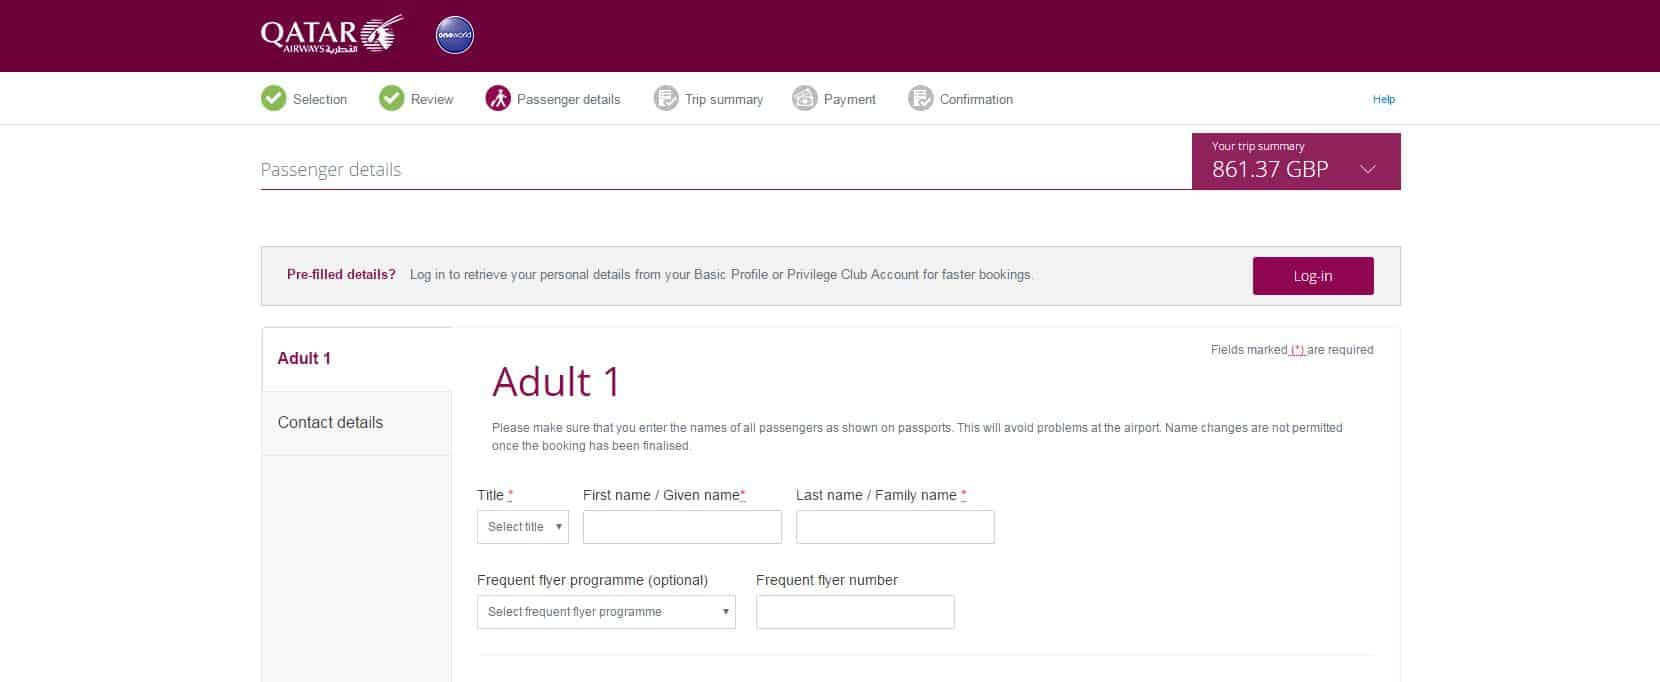 screen shot of Qatar airways passenger portal with personal details fields to be entered